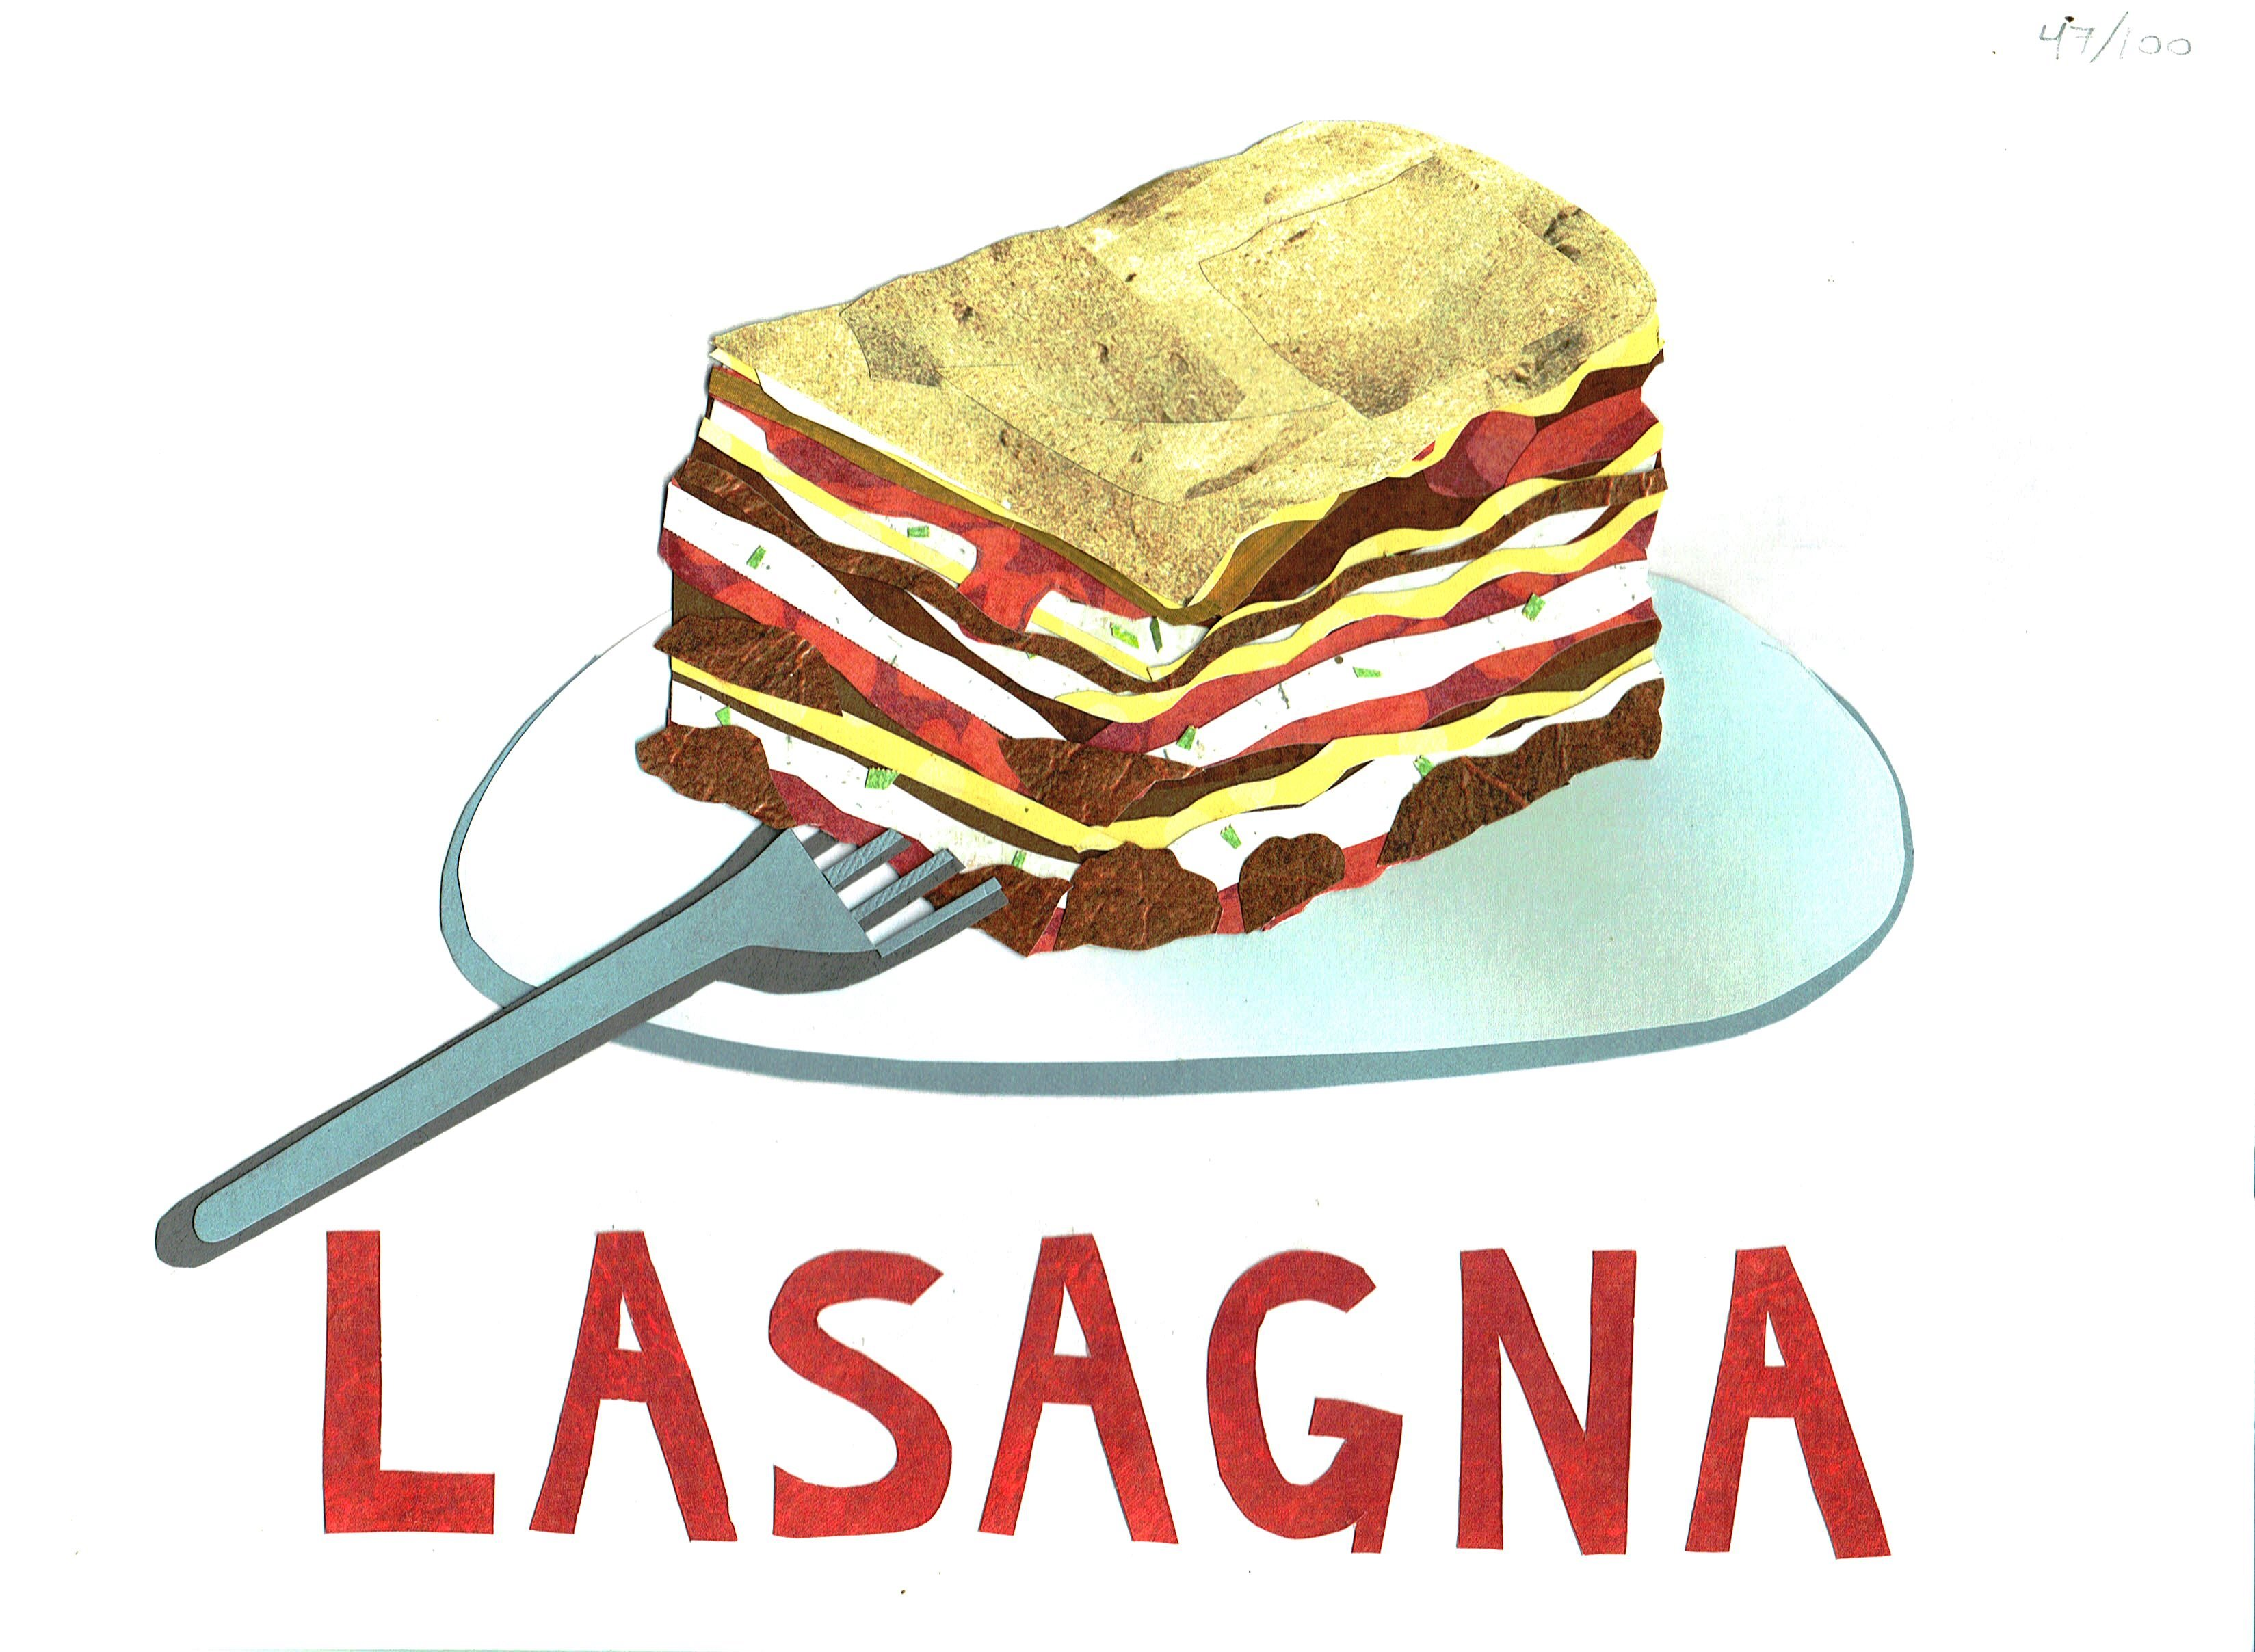 Day 47 - Lasagna